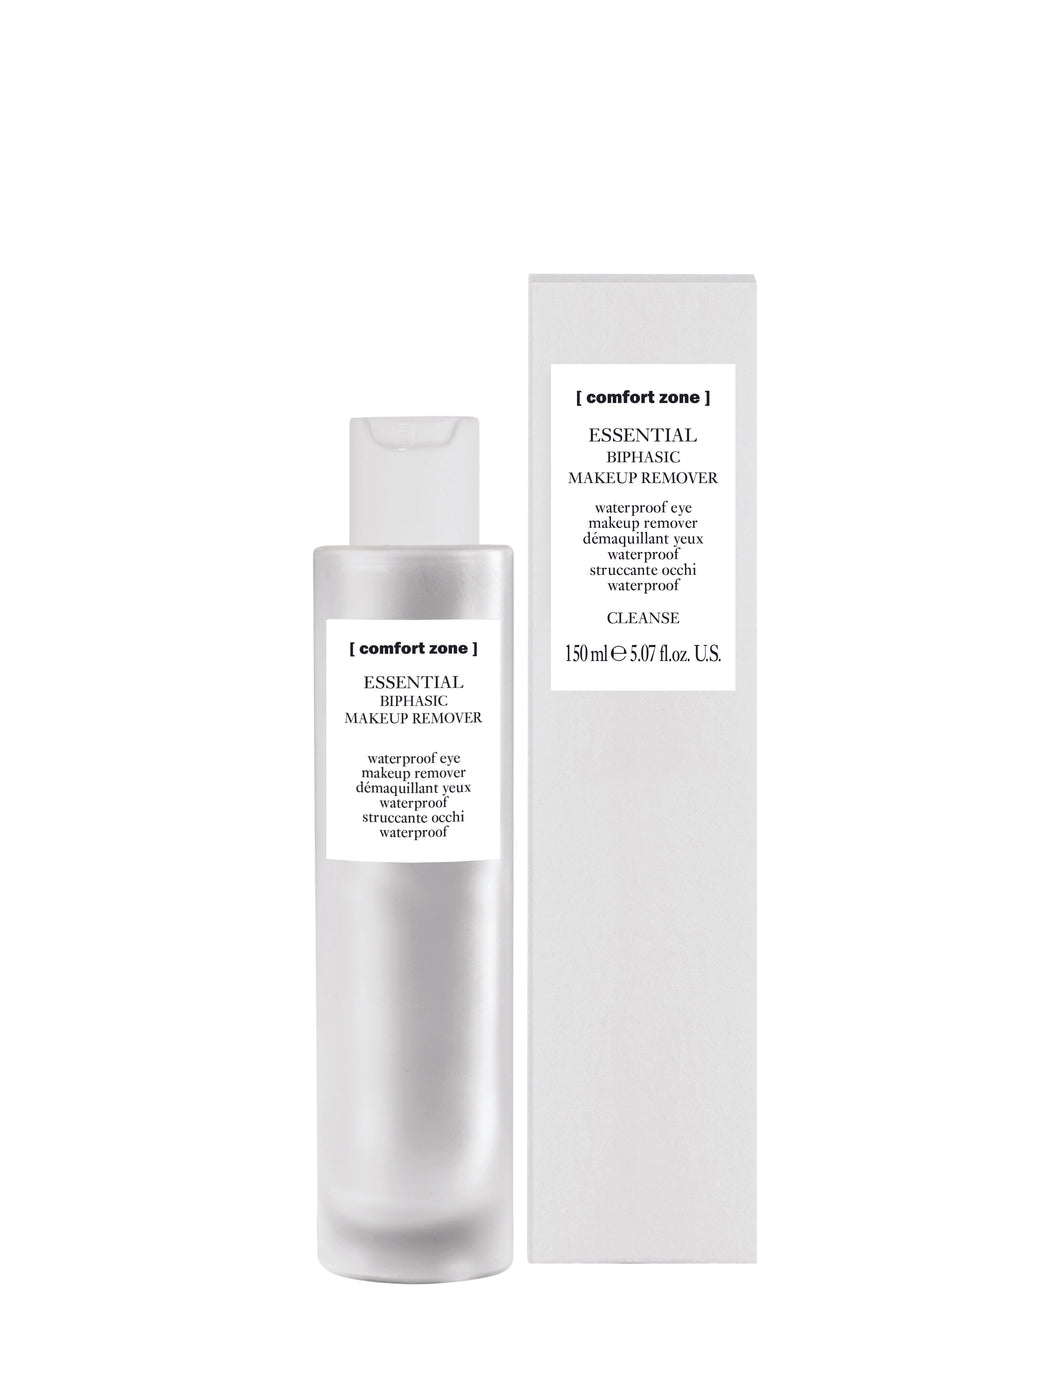 Comfort Zone Essential Biphasic Makeup Remover